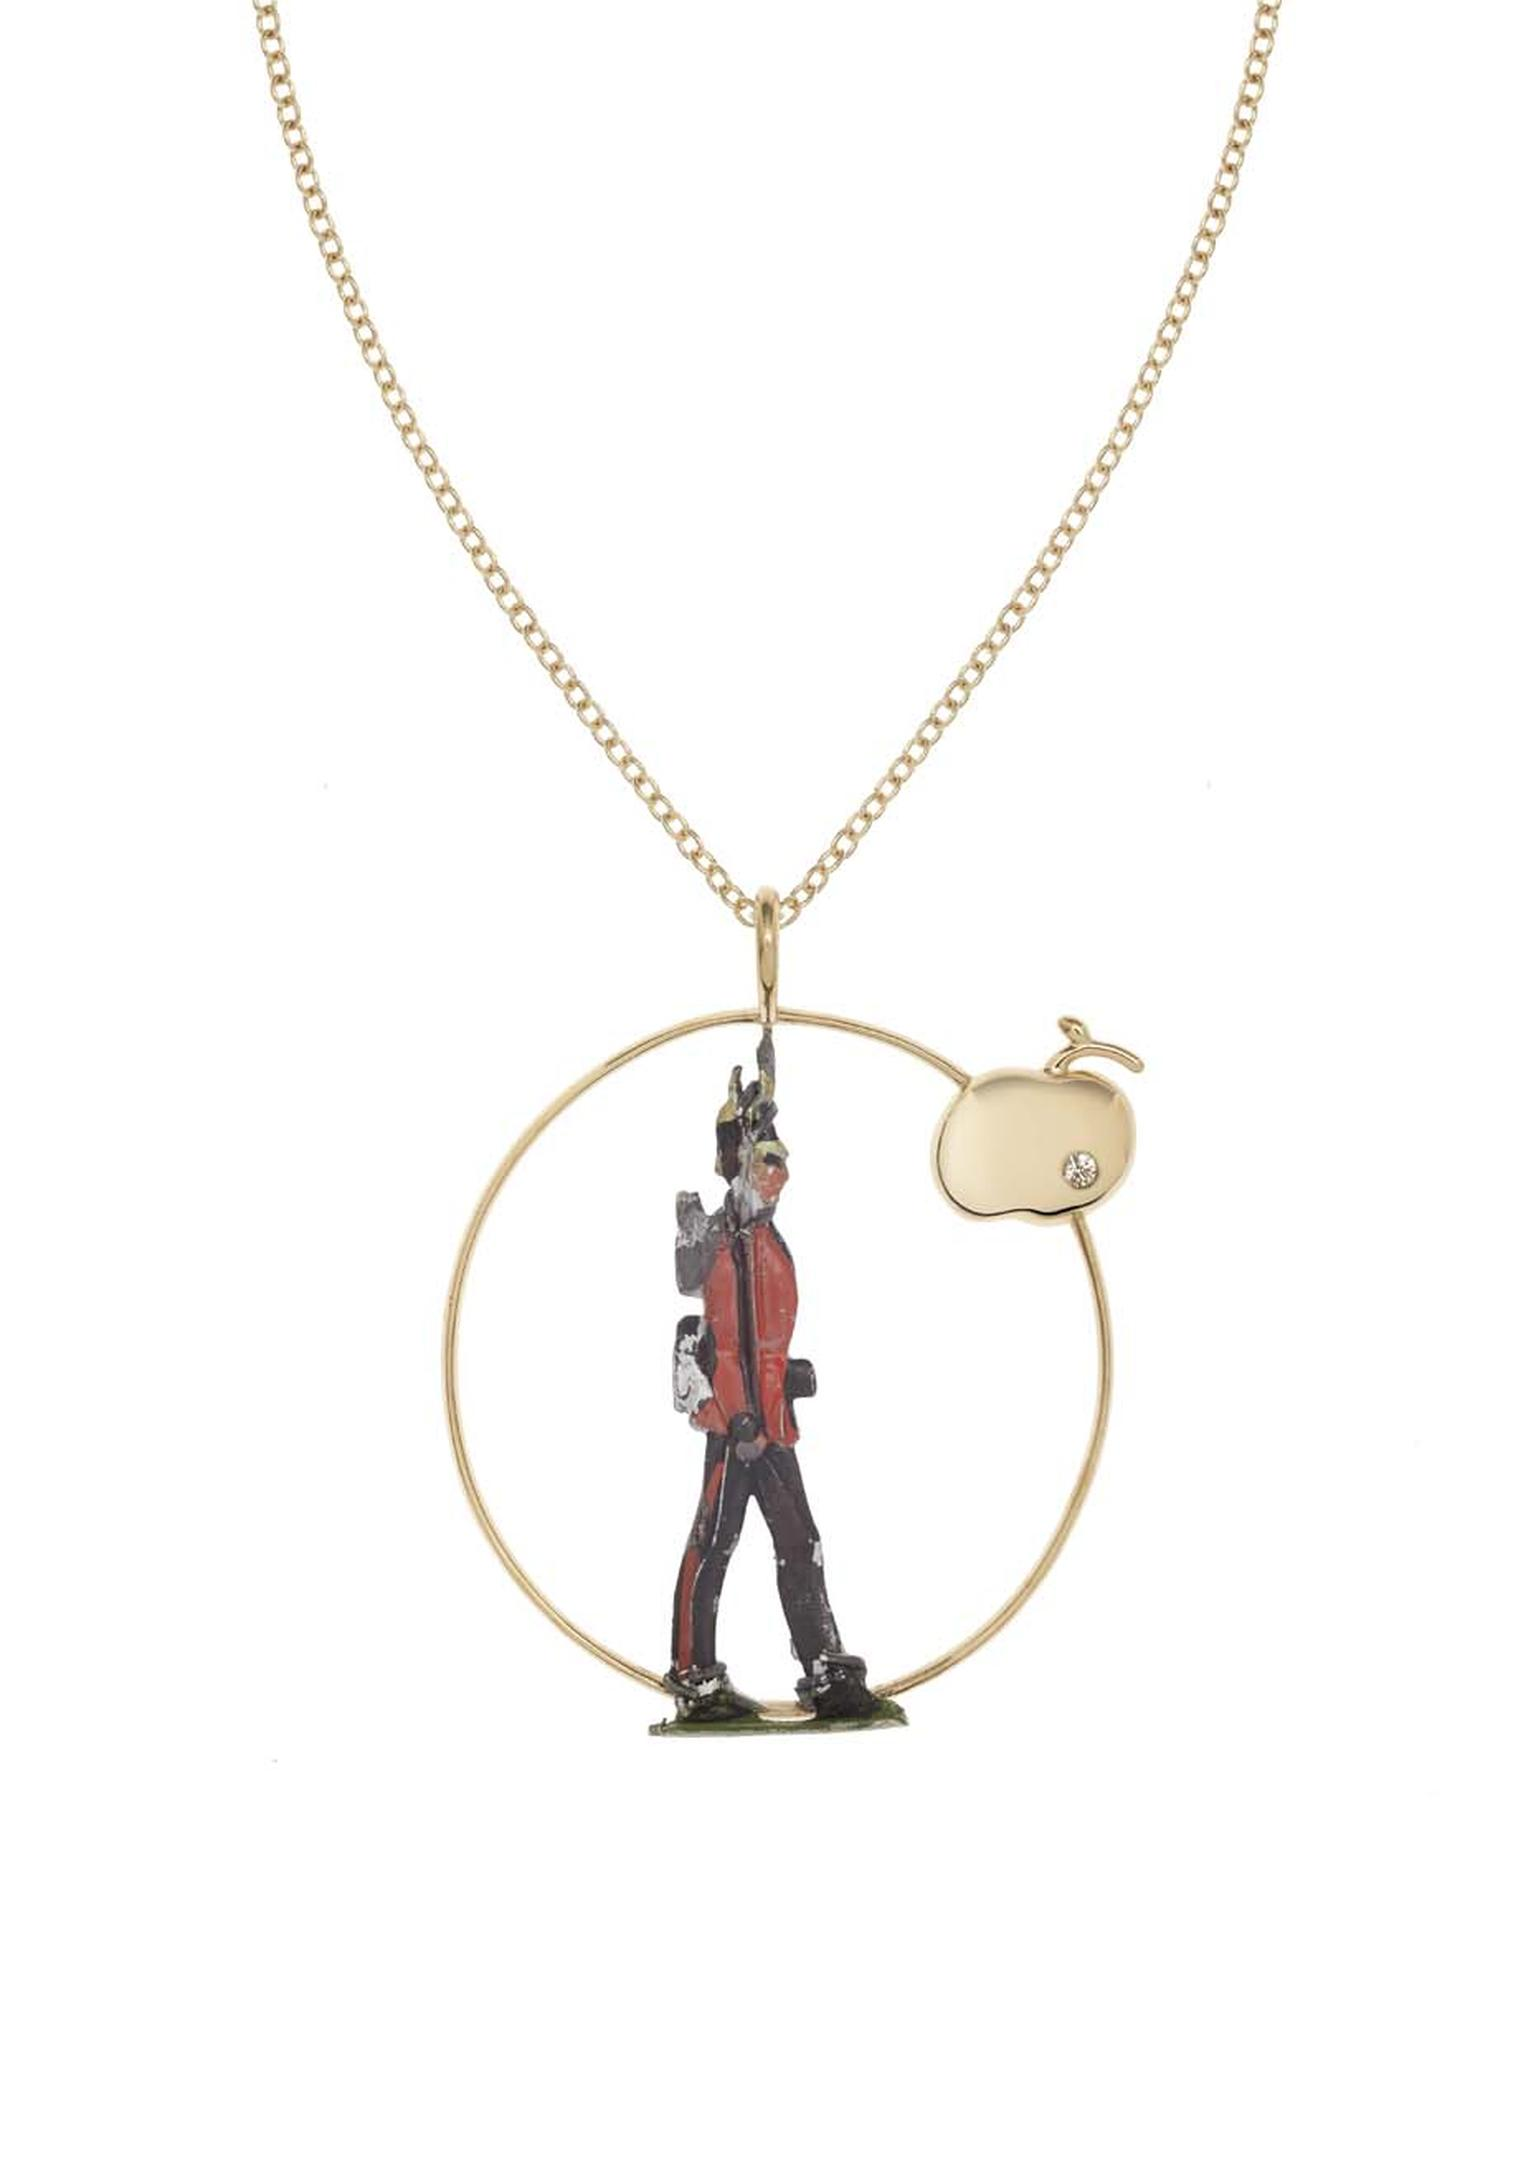 Francesca Villa yellow gold necklace incorporating an antique toy soldier, set with 0.22ct of diamonds.